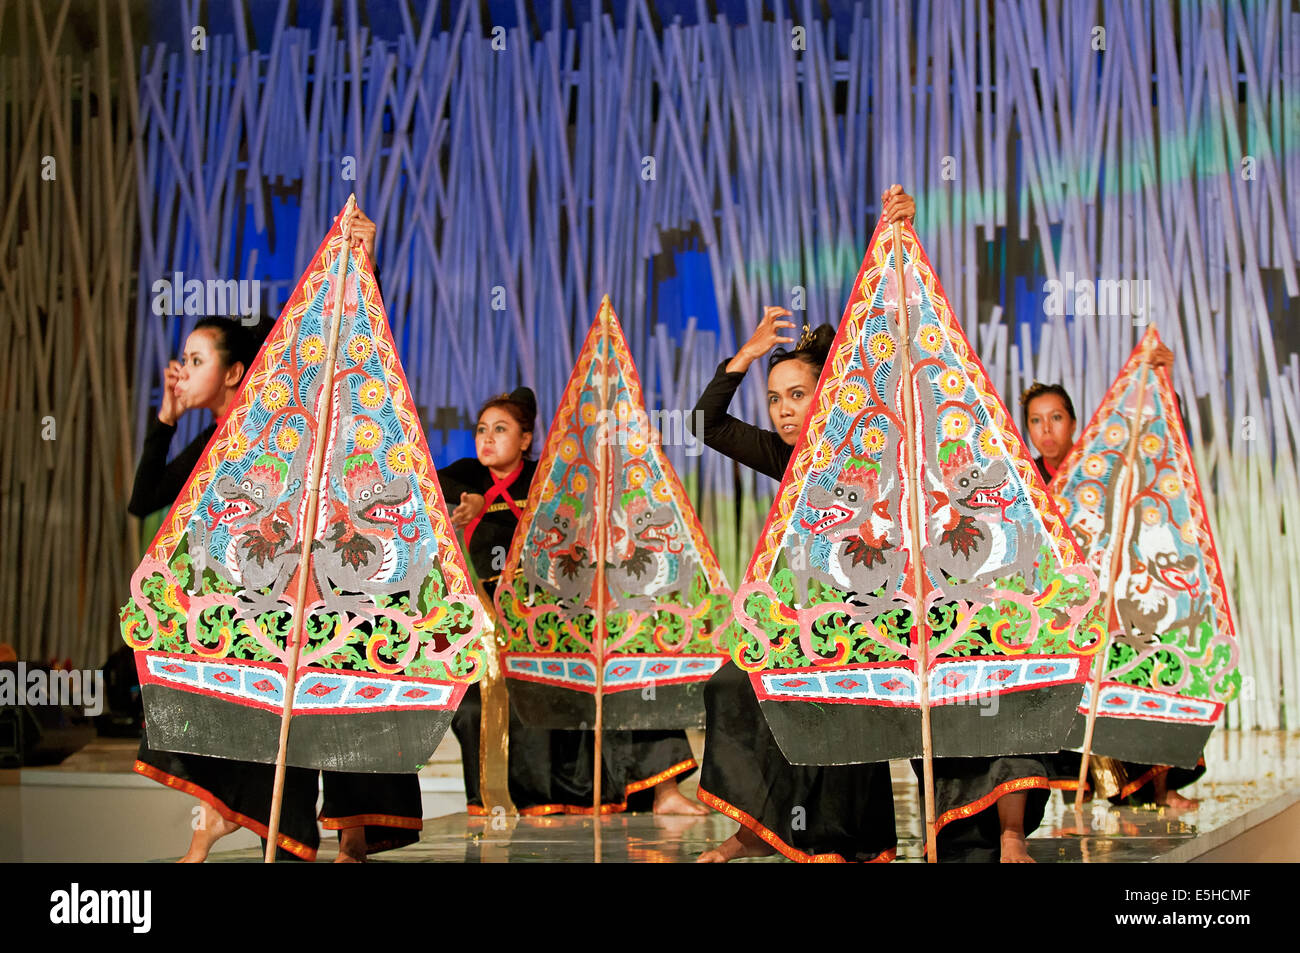 INDONESIAN CULTURAL MASK FESTIVAL 2010 ( MAIN EVENT )October 16th 2010-Evening Time The program held at The Cultural - Stock Image